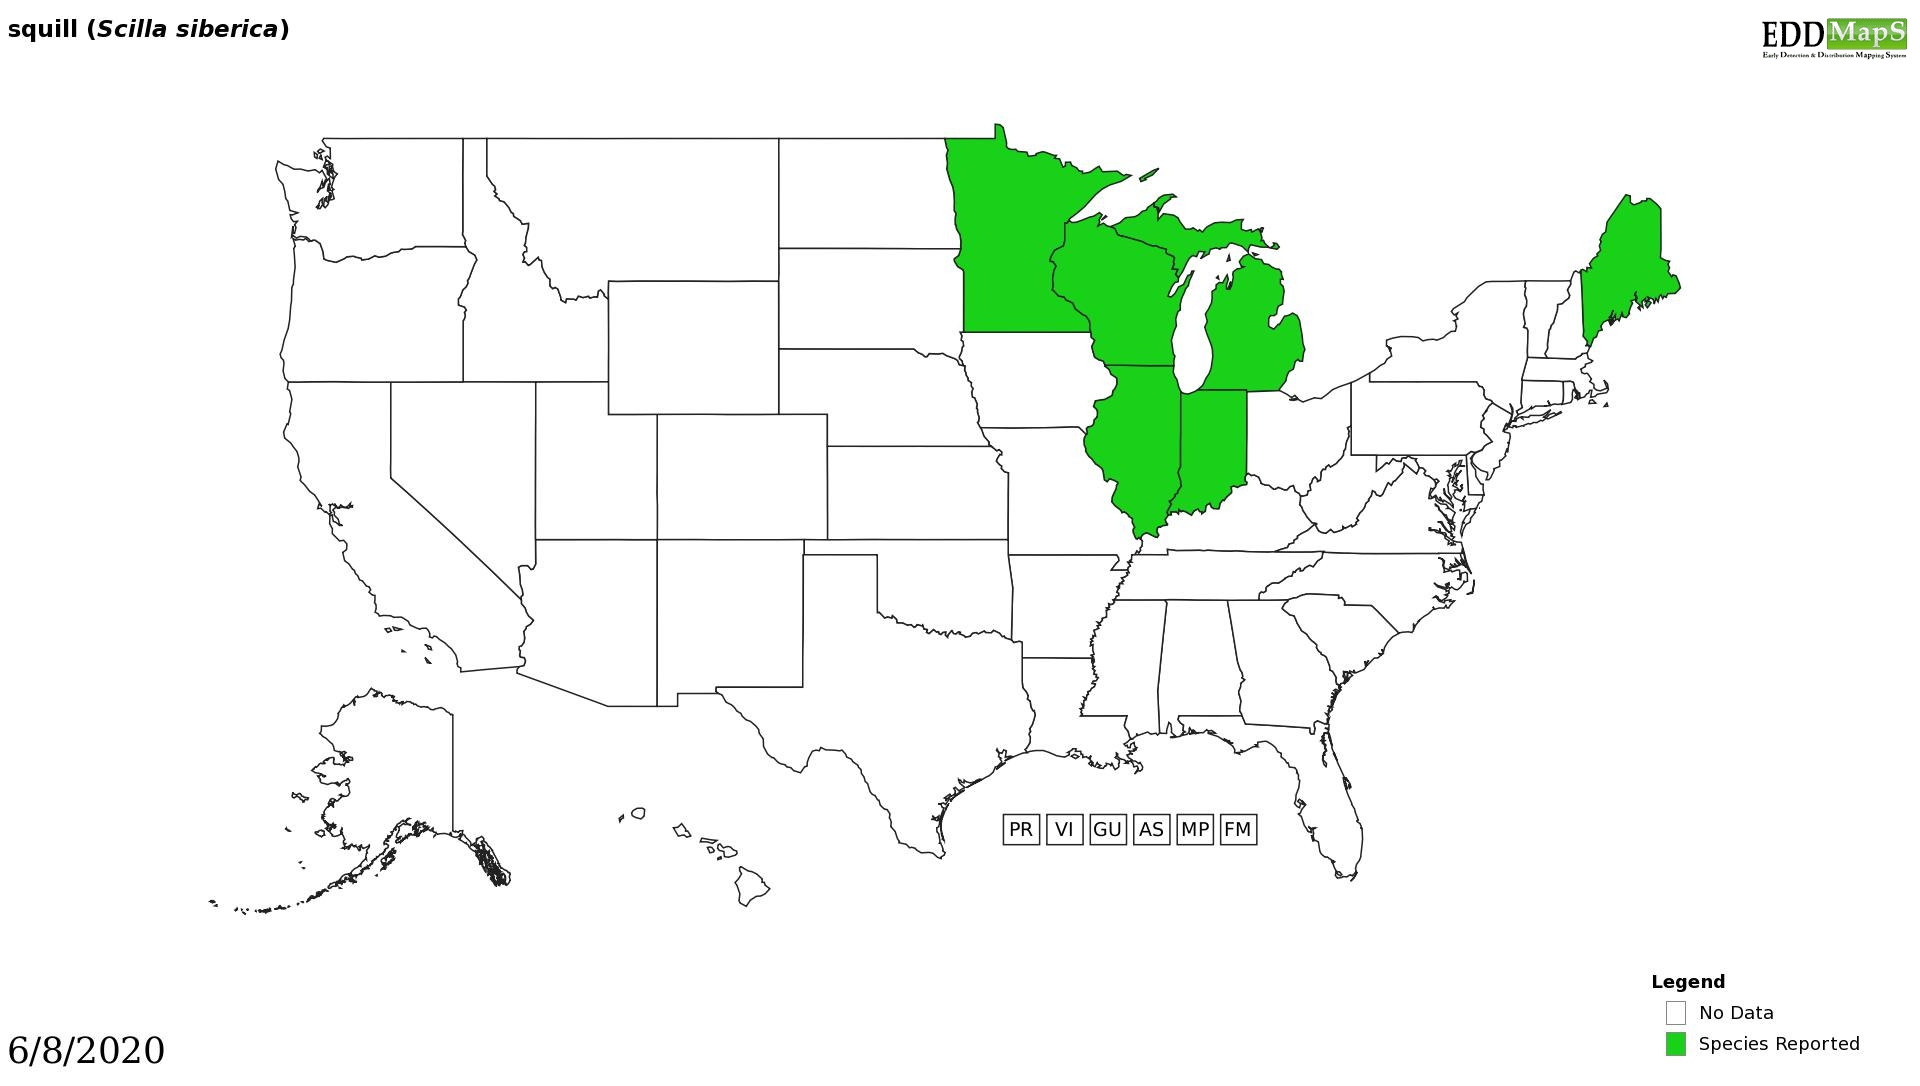 Squill distribution - United States